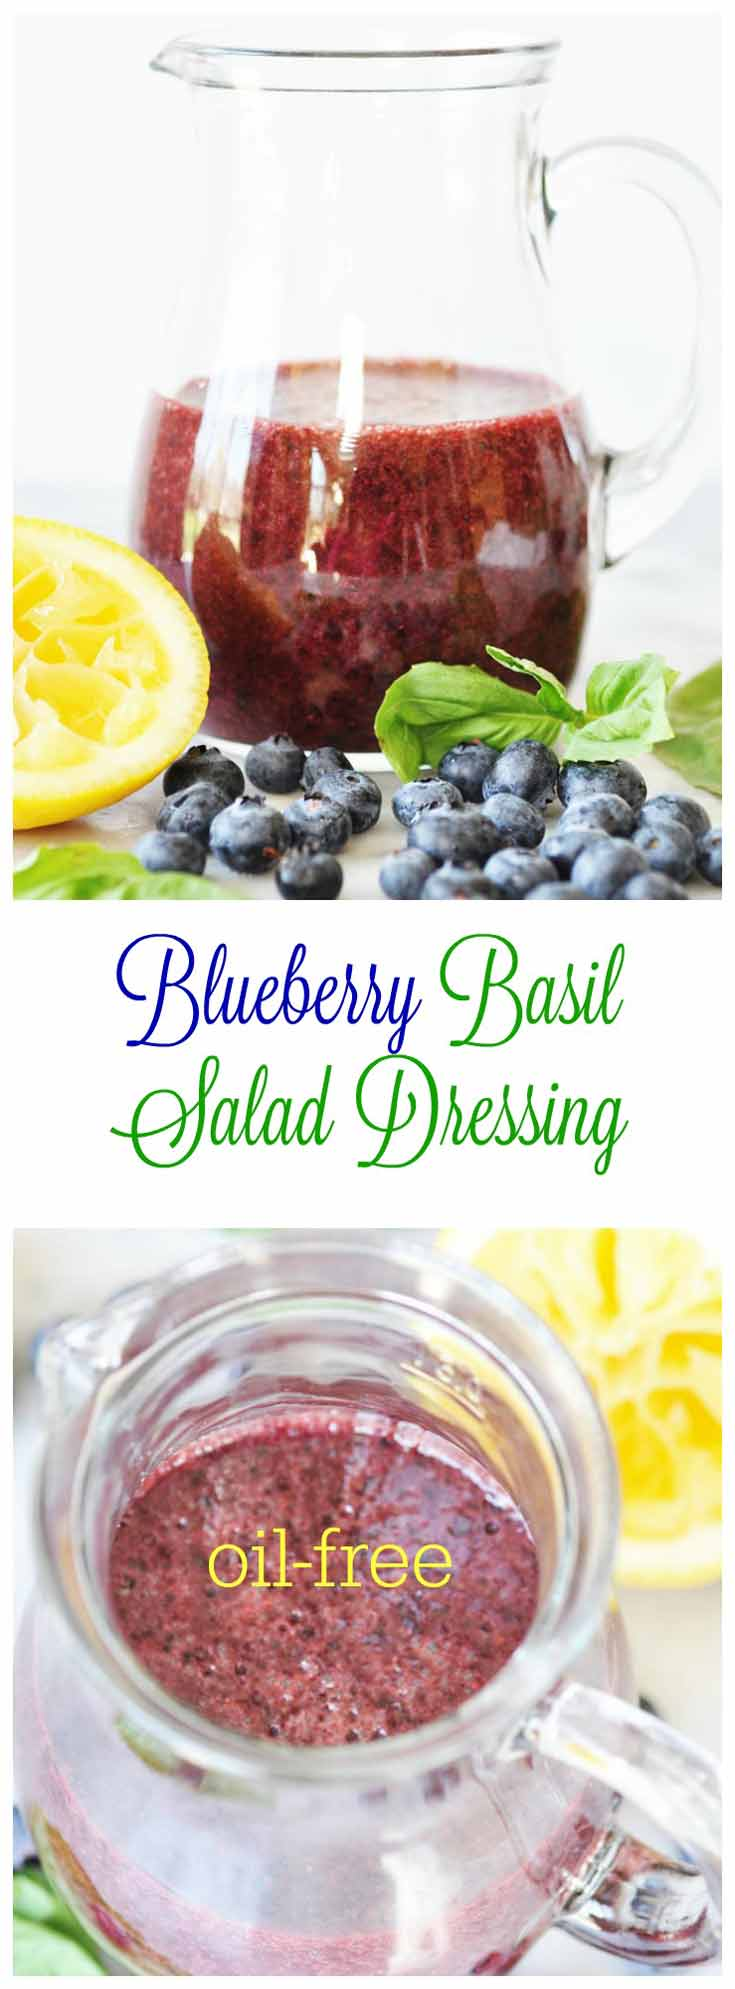 Blueberry Basil Salad Dressing! This delicious oil-free dressing has ...